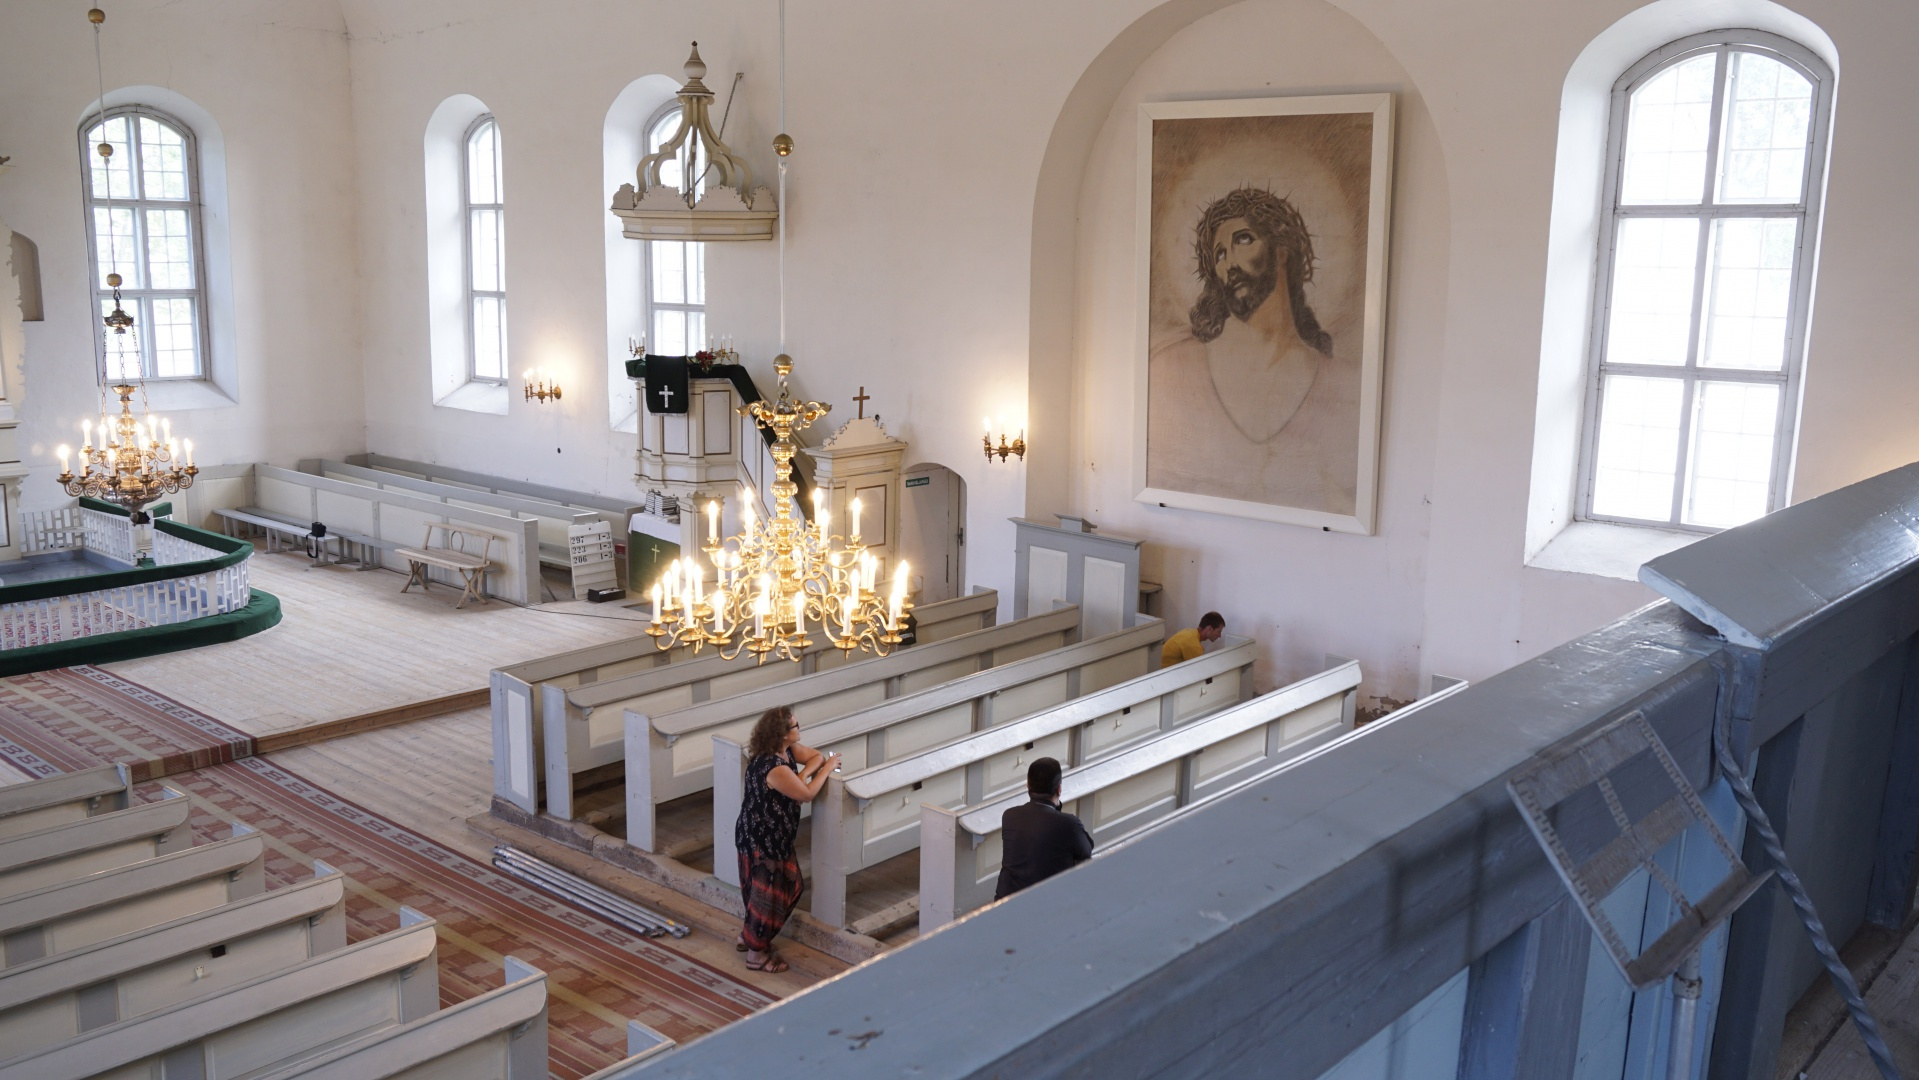 fig 17. The portrait drawing on the wall of the church after conservation.